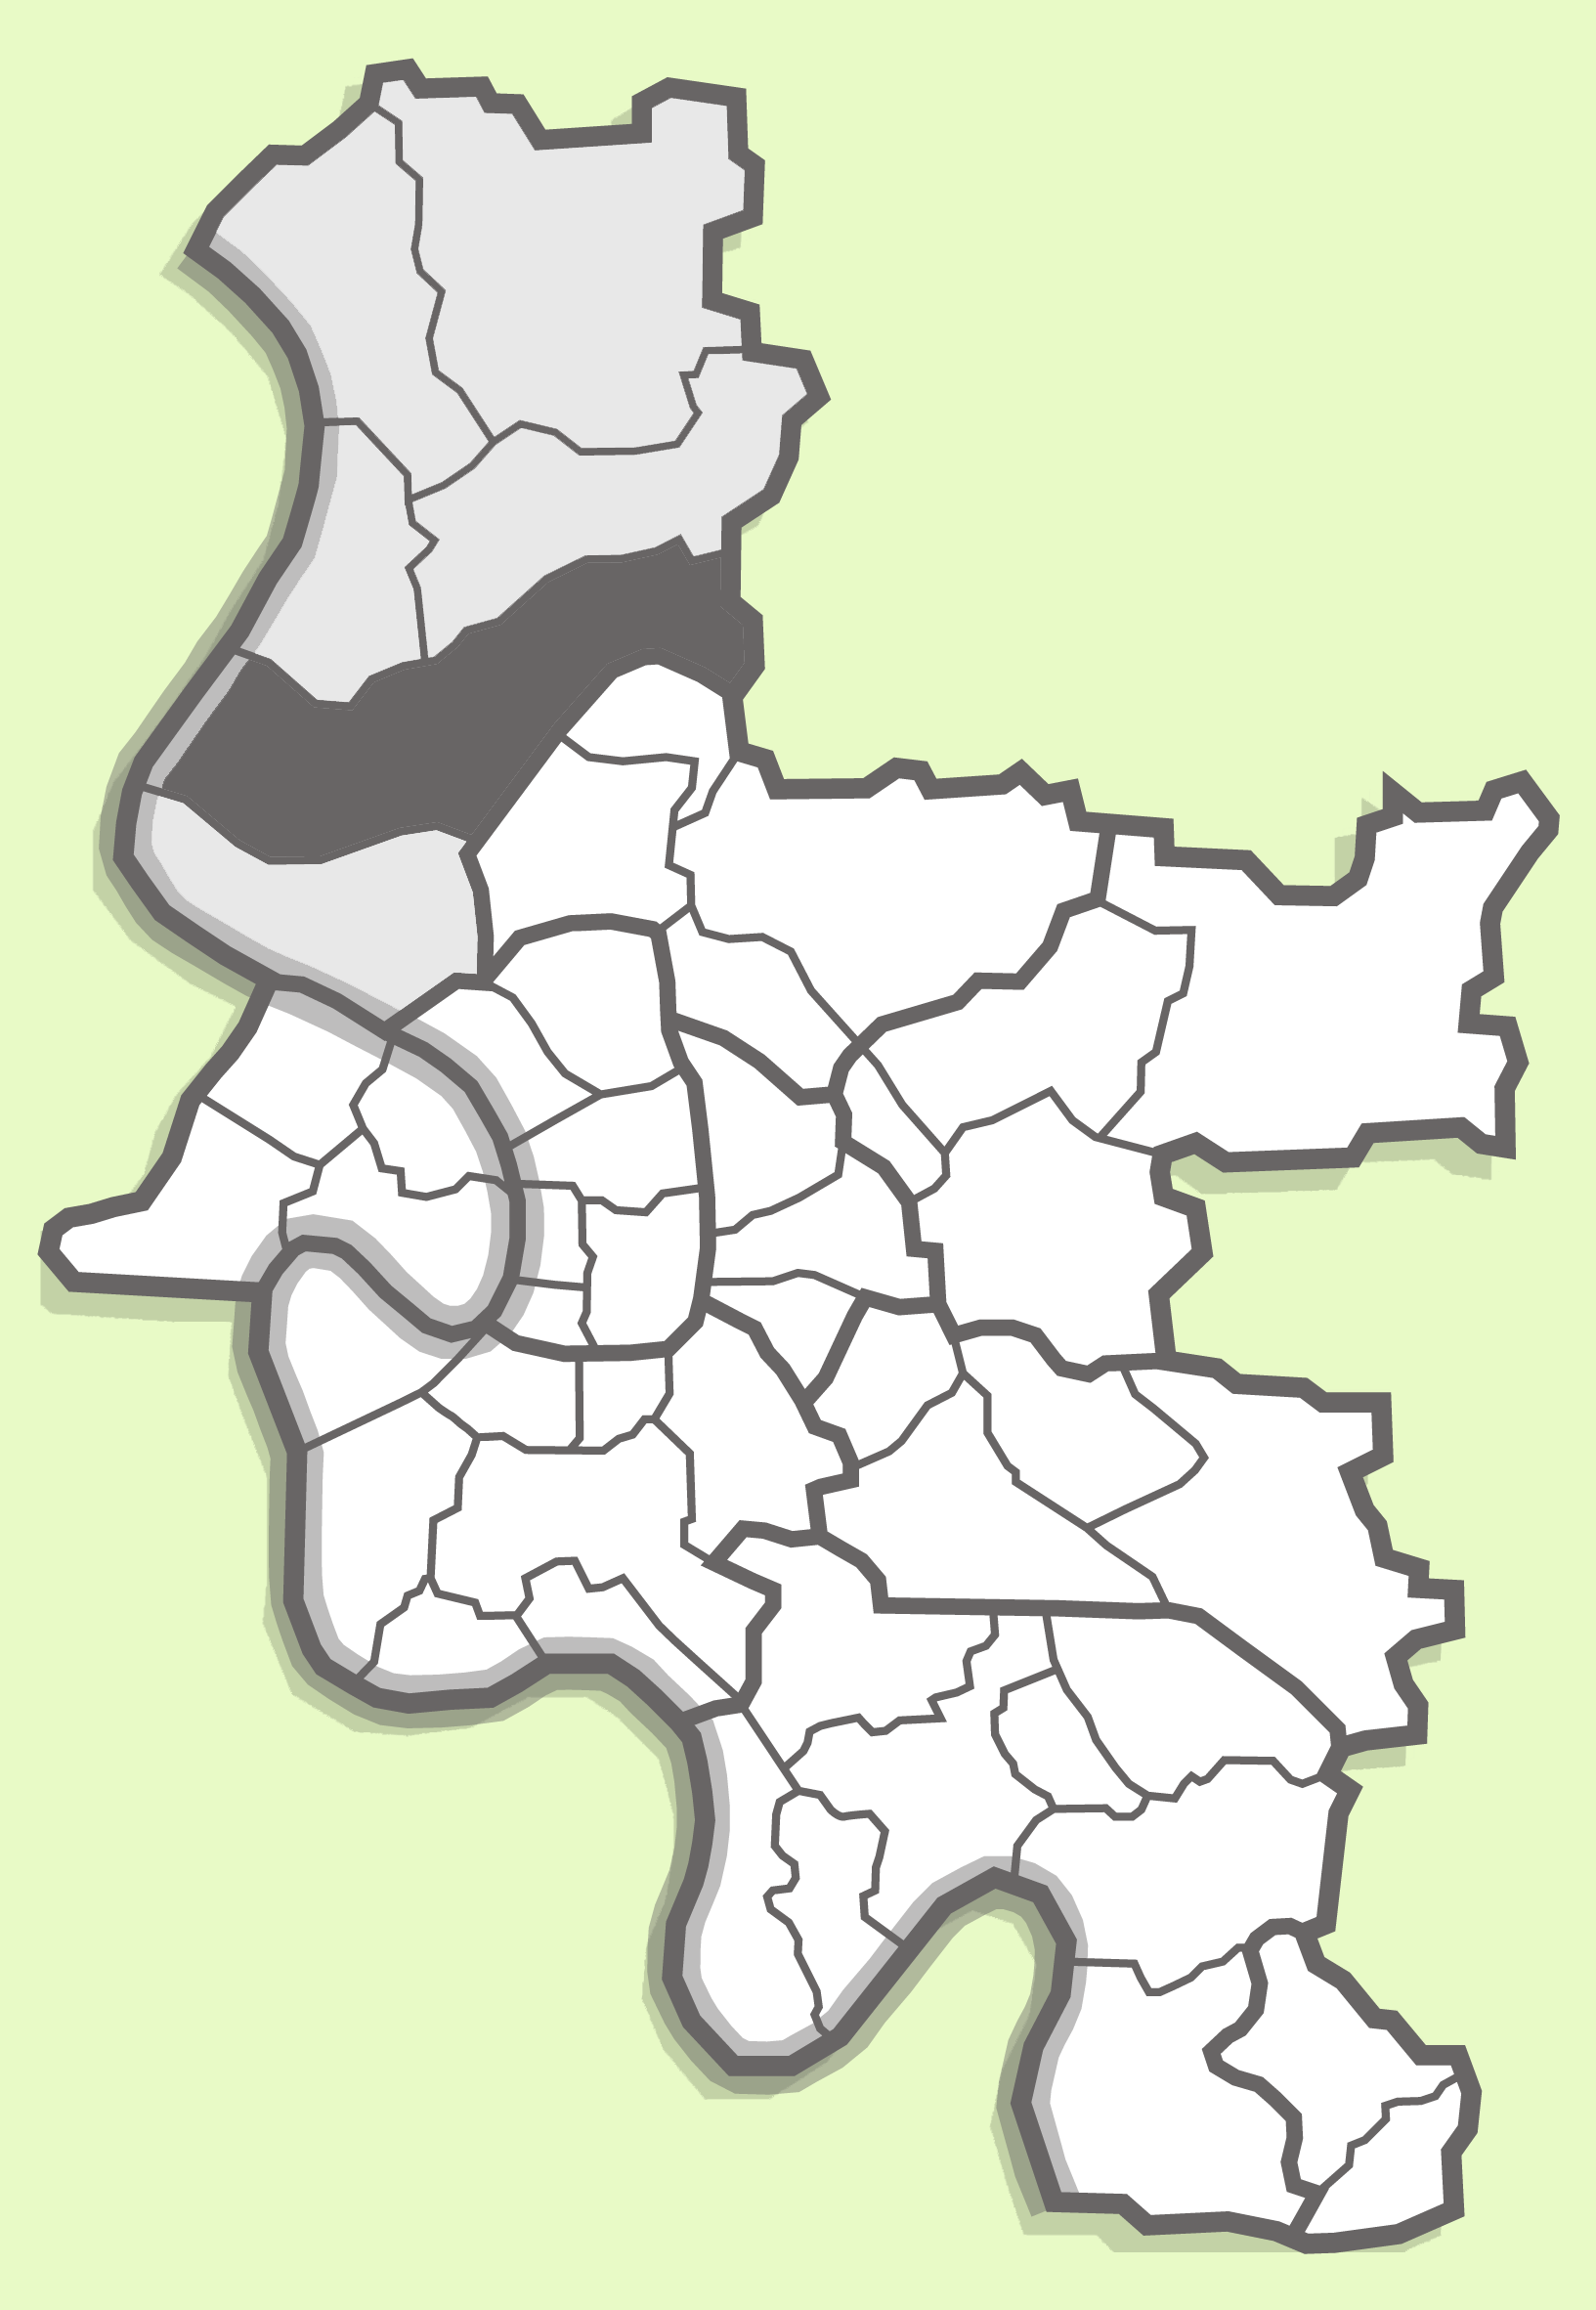 parts of the city of duesseldorf (lohausen) / Karte mit den Düsseldorfer Stadtteilen (Lohausen)